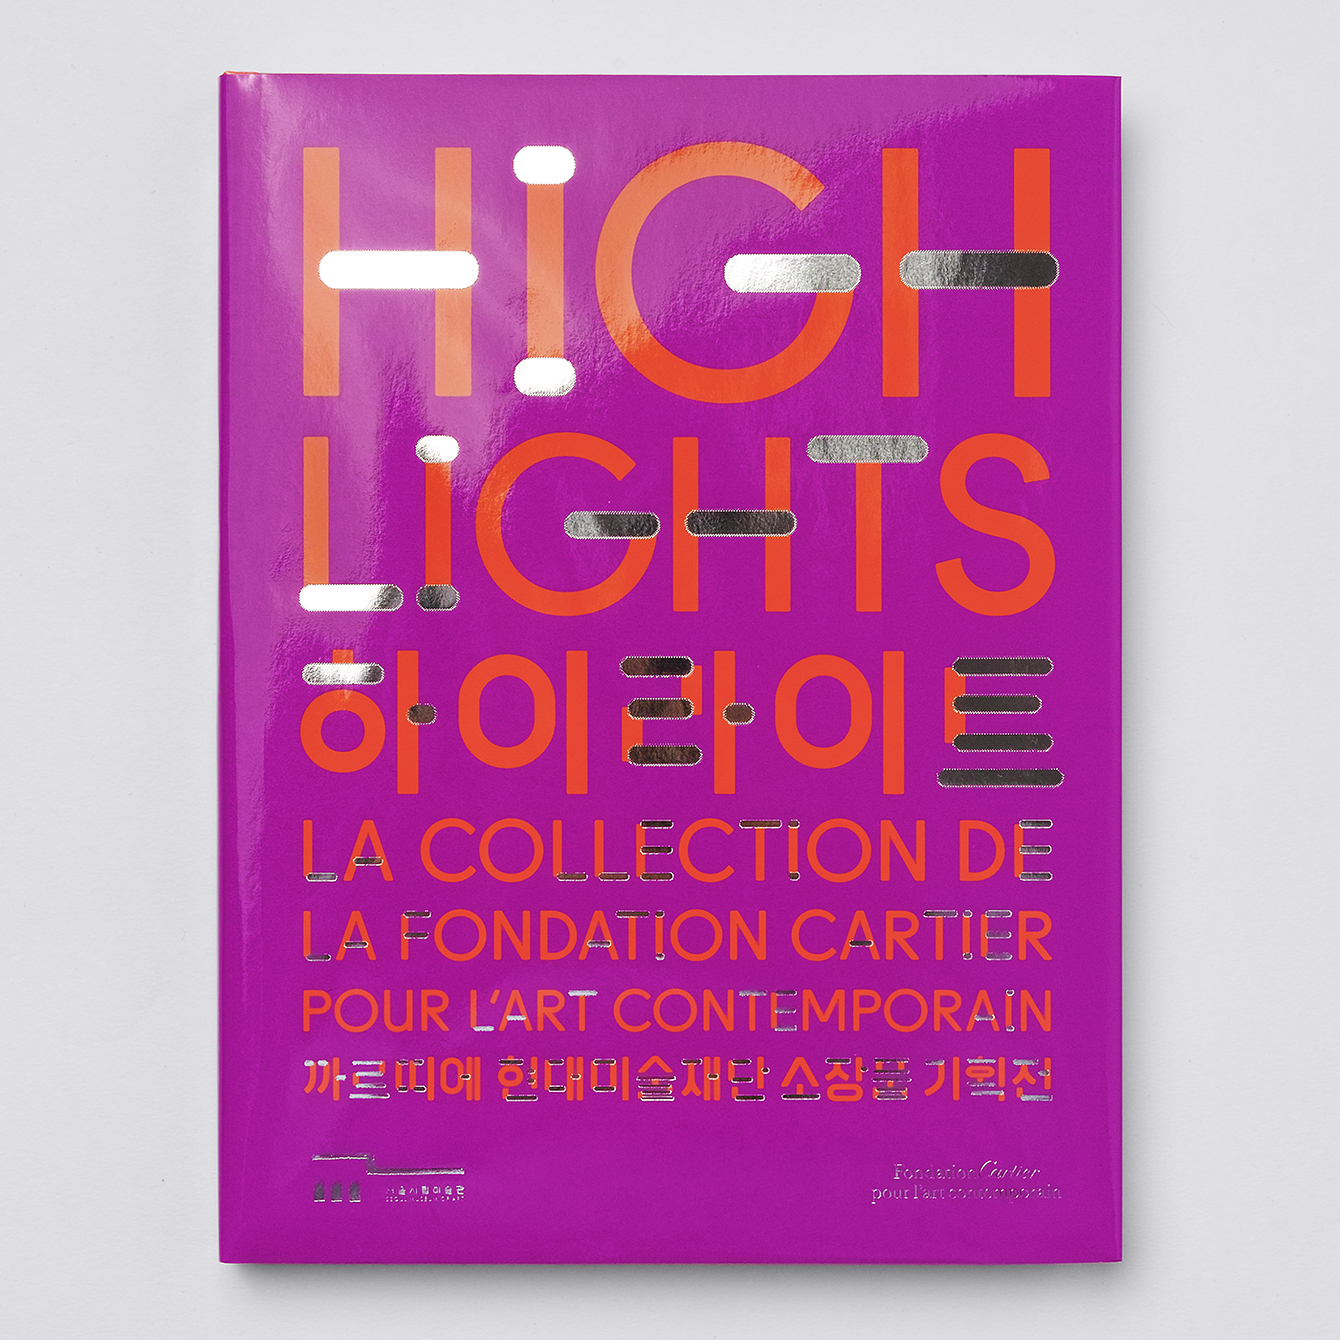 79-Highlights-La-Collection-de-la-Fondation-Cartier-pour-lart-Contemporain-Seoul-Museum-of-Art-Branding-Print-Catalogue-Studio-fnt-BPO